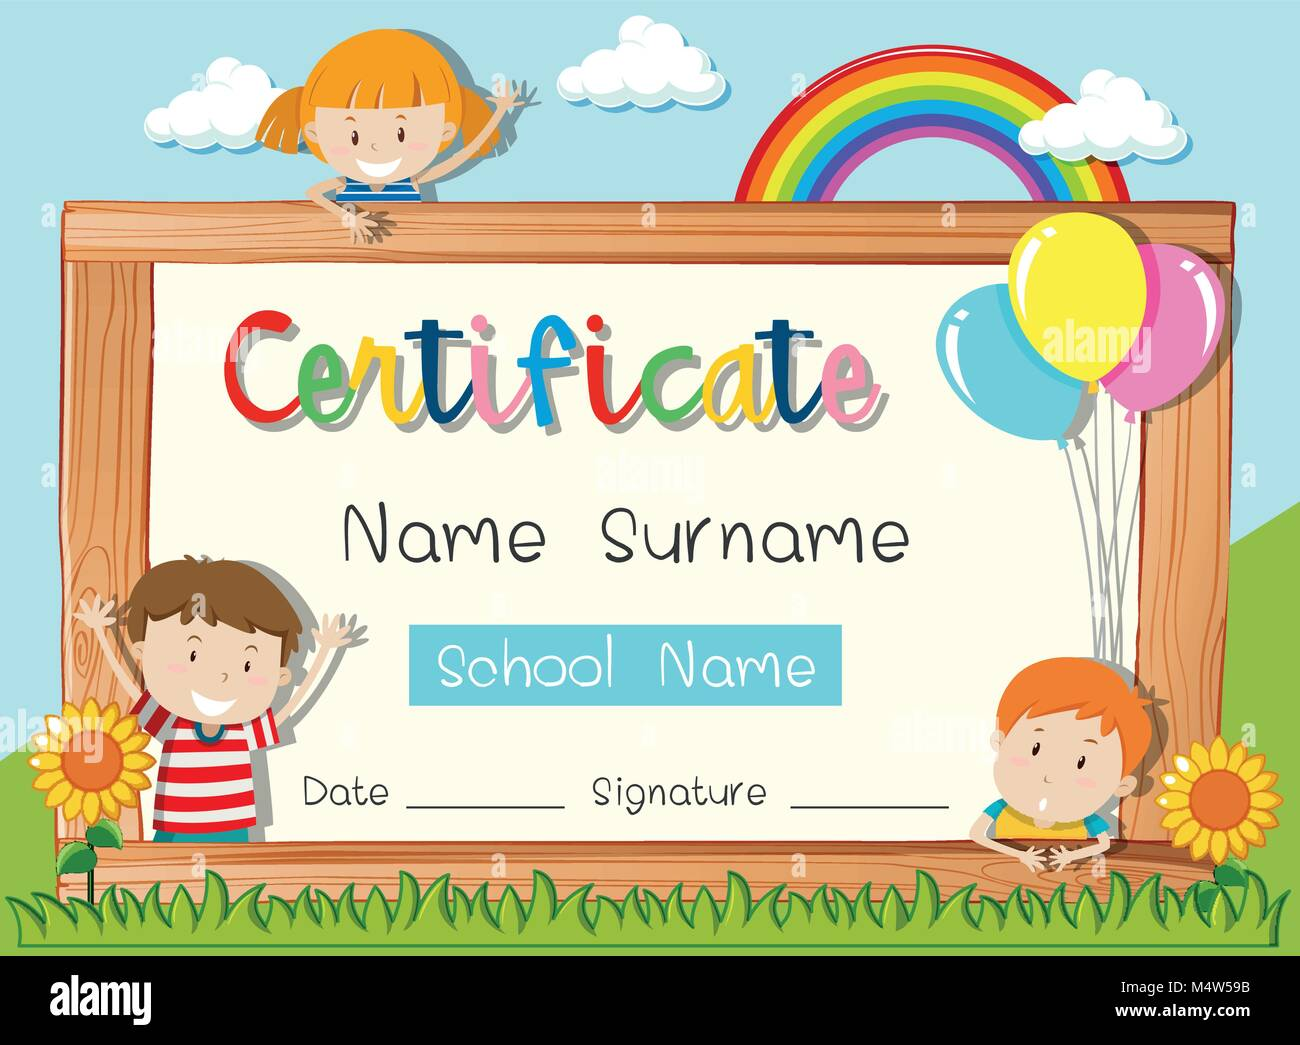 Certificate Template With Three Kids In Park Illustration Stock